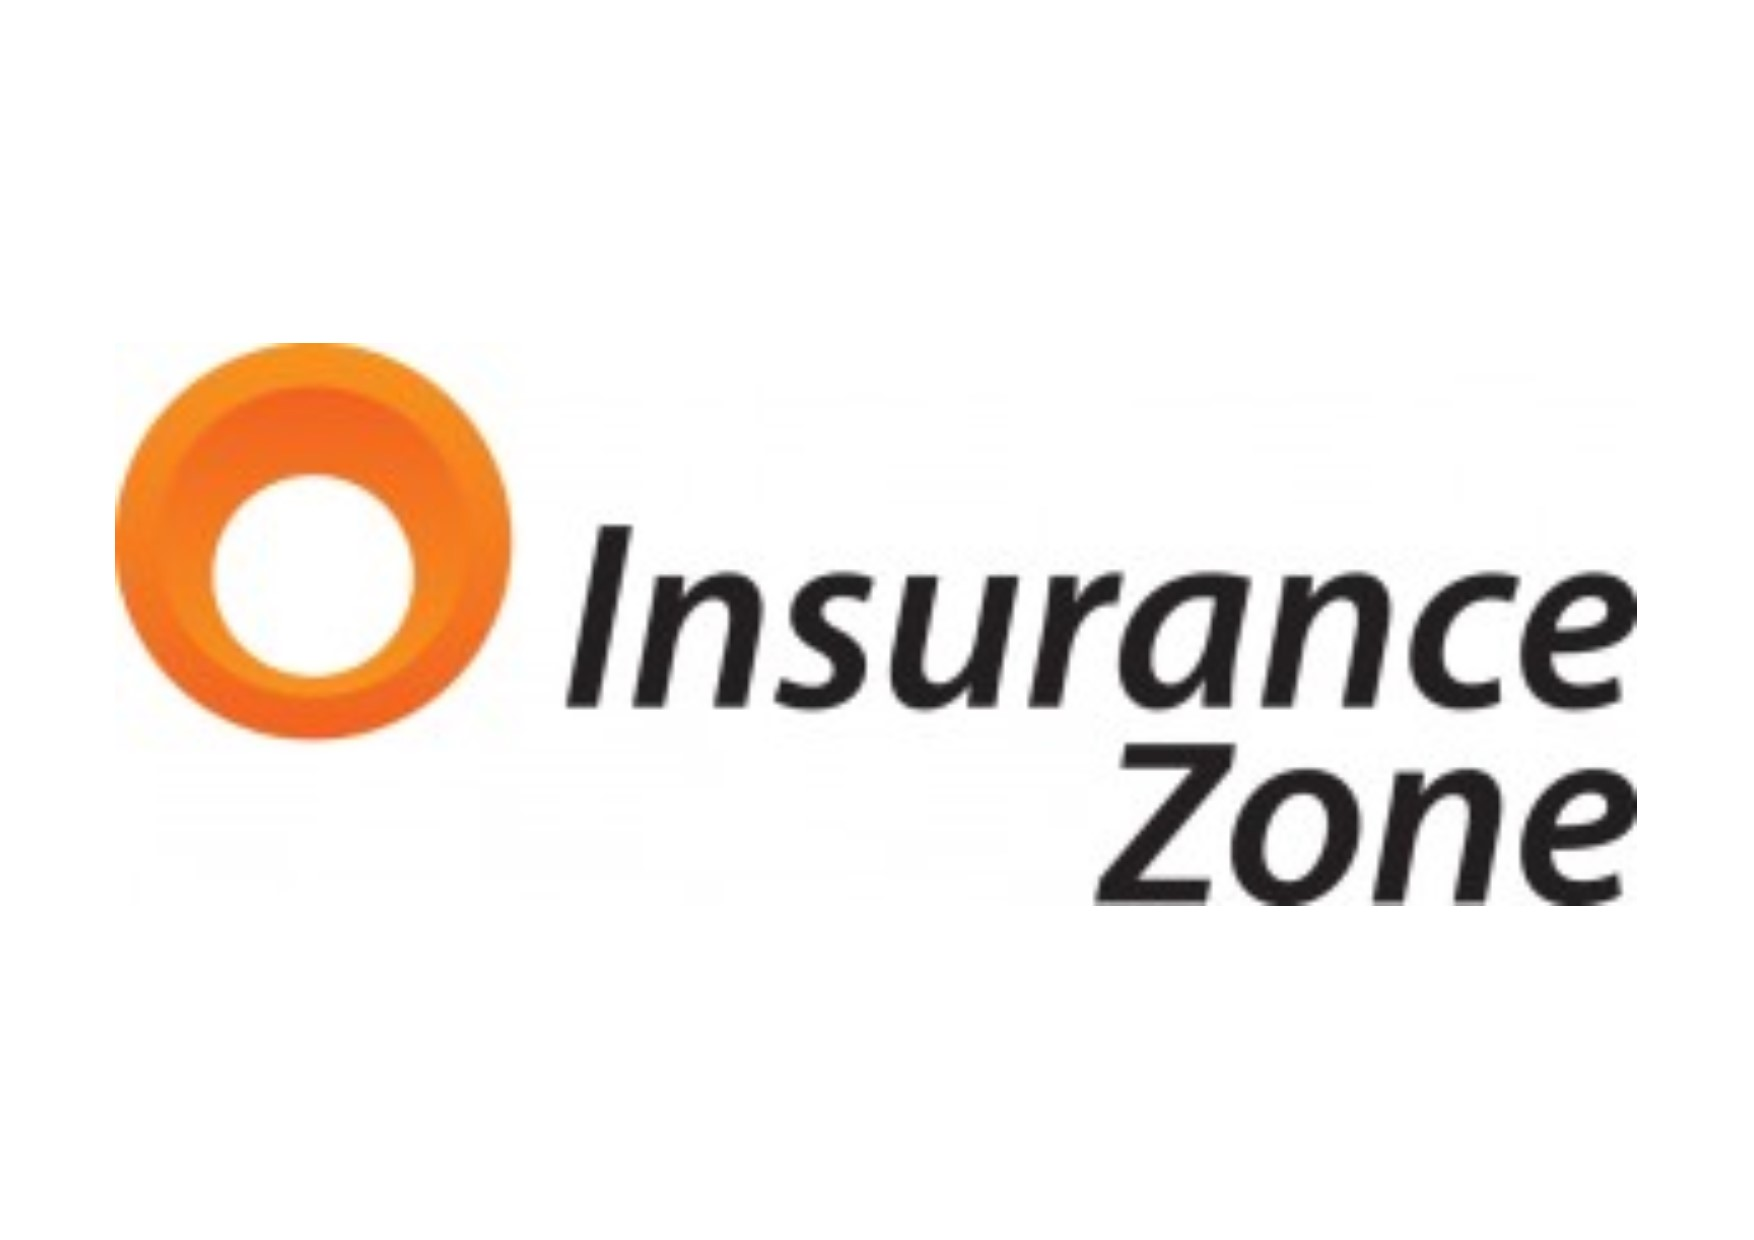 Insurance Zone Administration Services